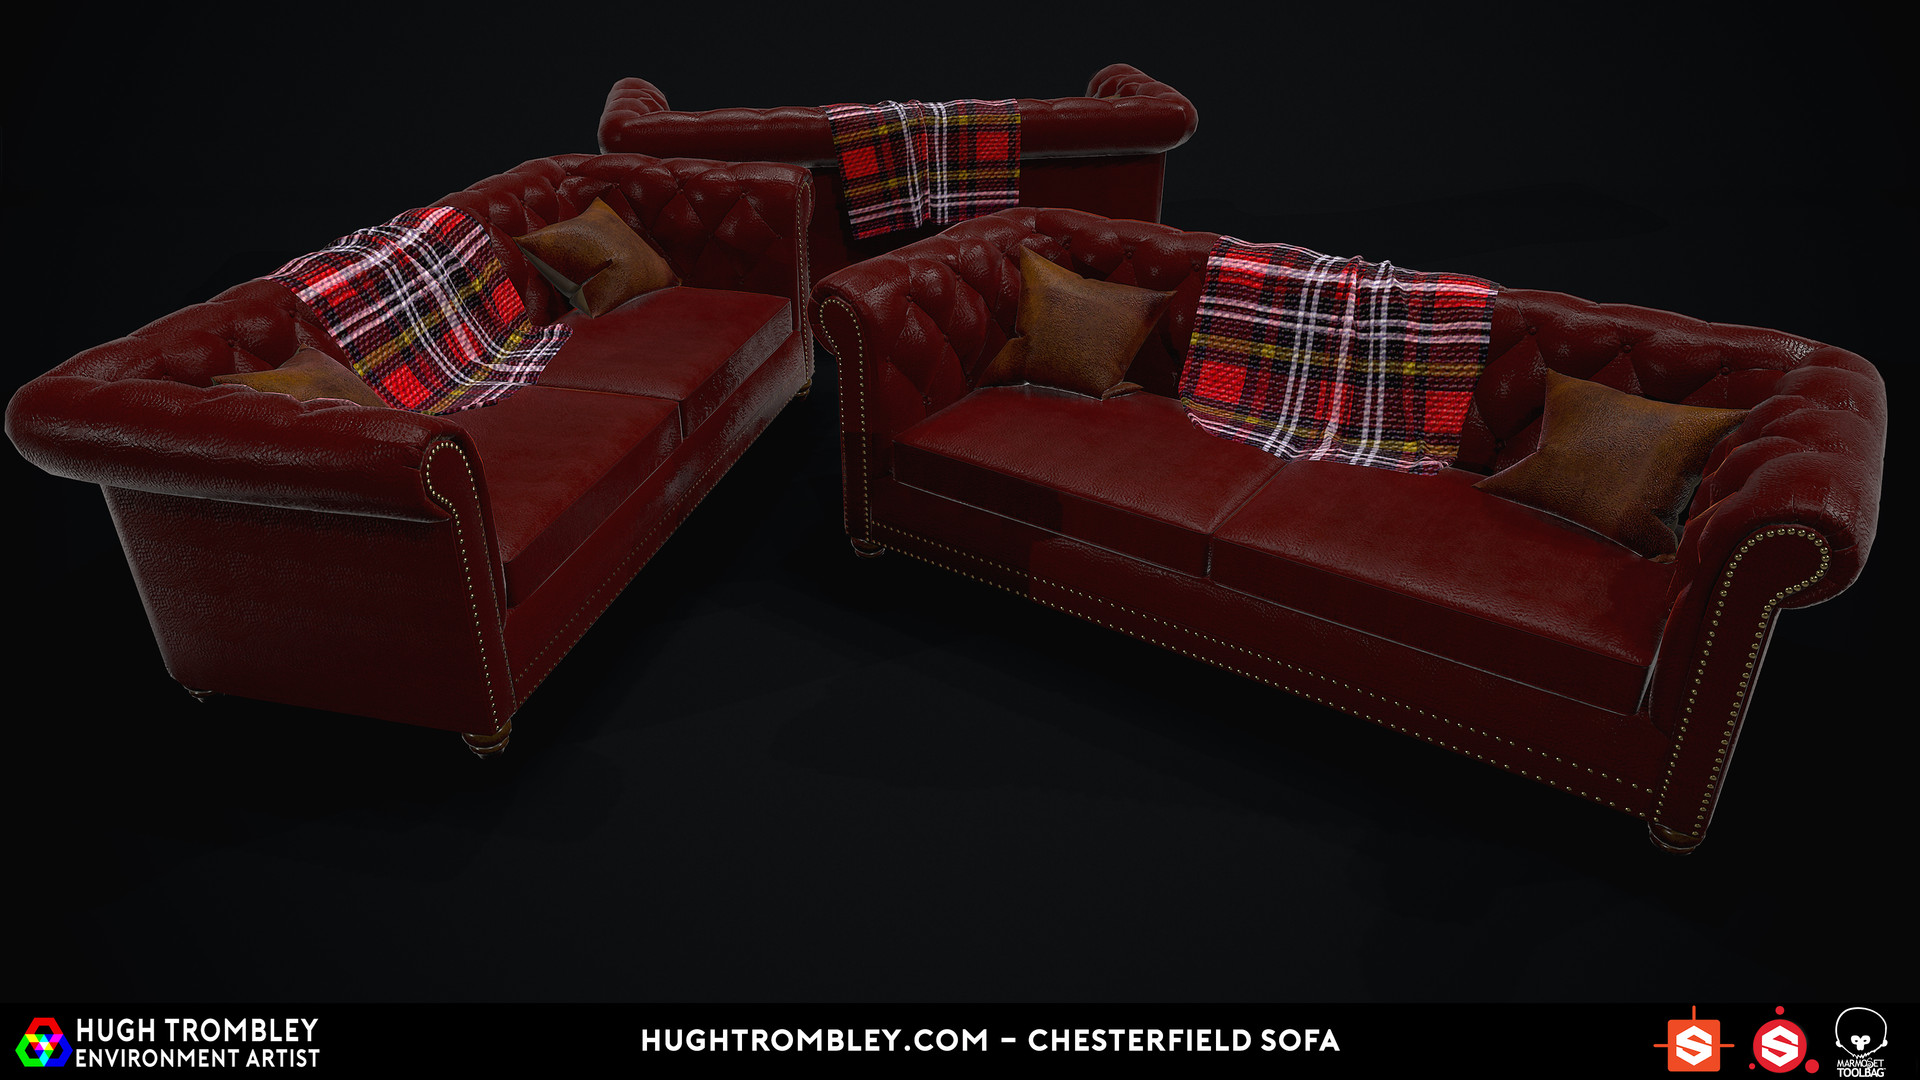 tartan chesterfield sofa foot massage hugh trombley 3d environment artist shot03